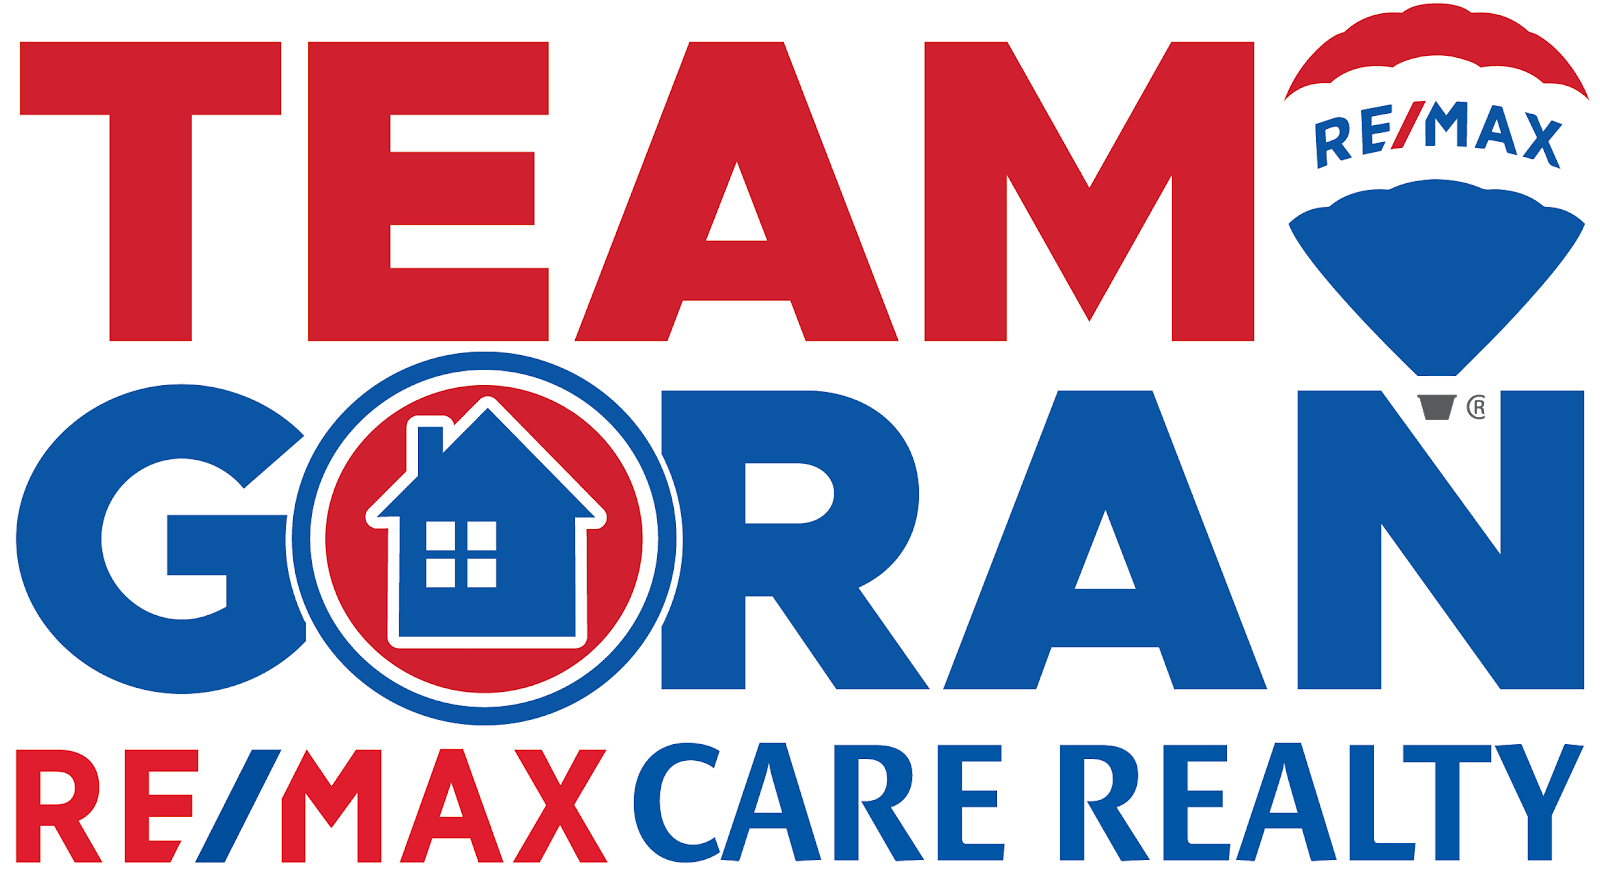 RE/MAX CARE Realty logo